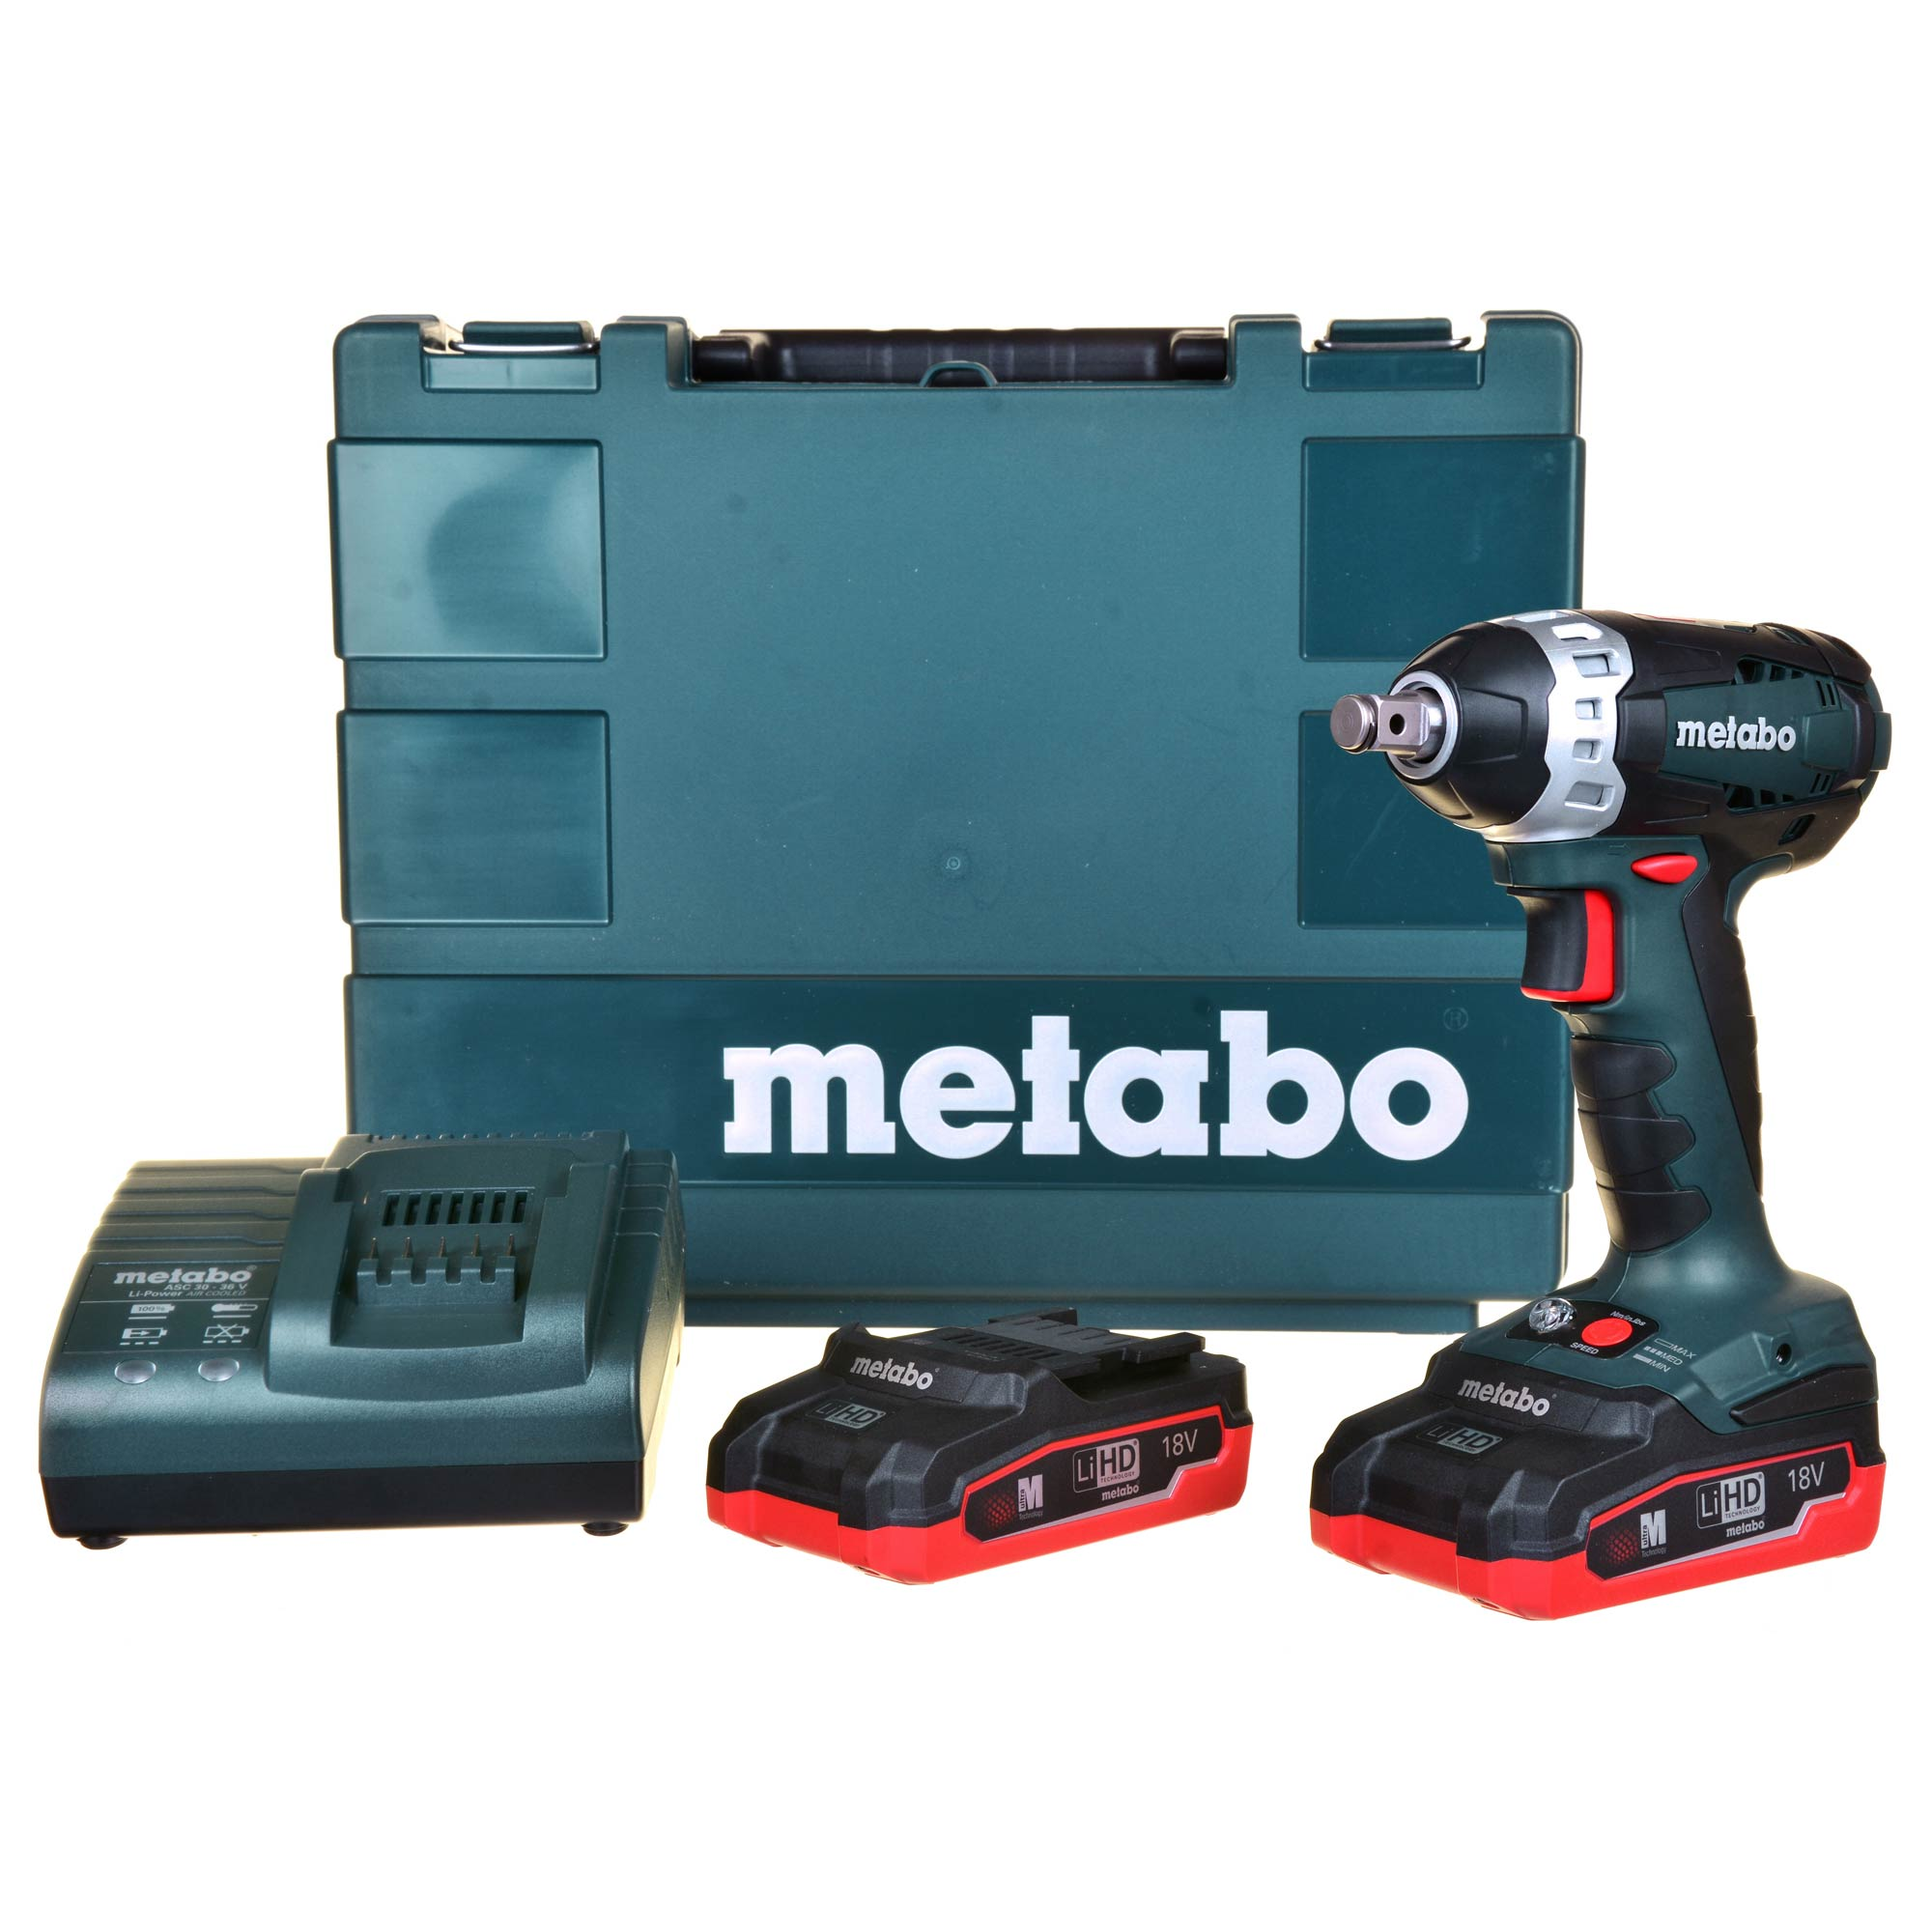 metabo ssw 18 ltx 200 18v lihd 1 2 impact wrench. Black Bedroom Furniture Sets. Home Design Ideas